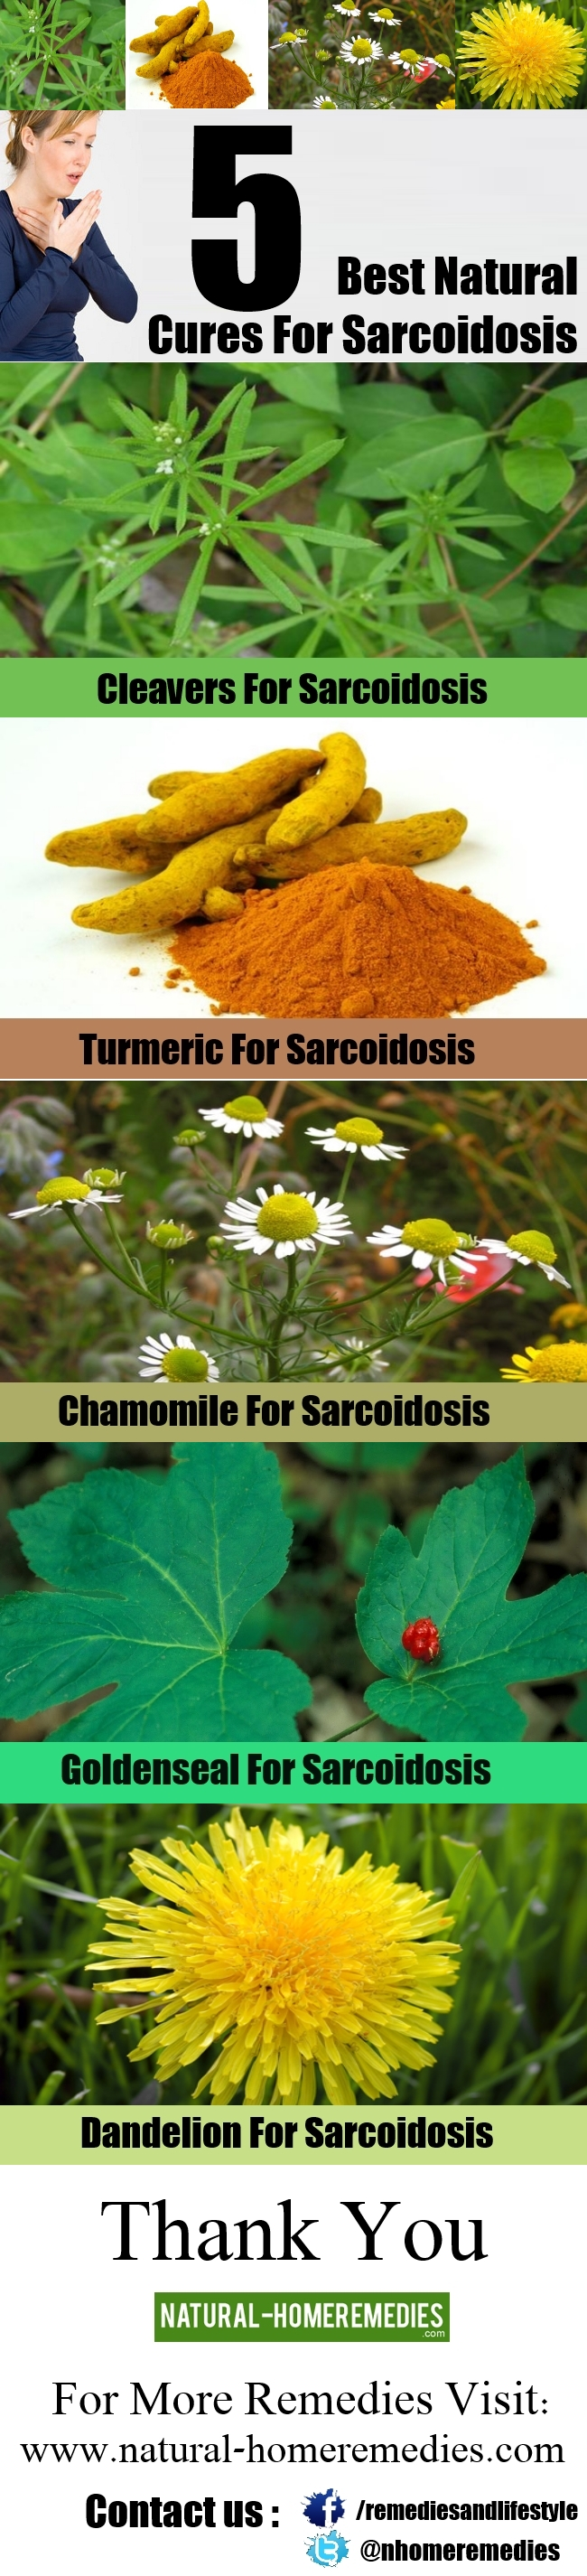 5 Best Natural Cures For Sarcoidosis